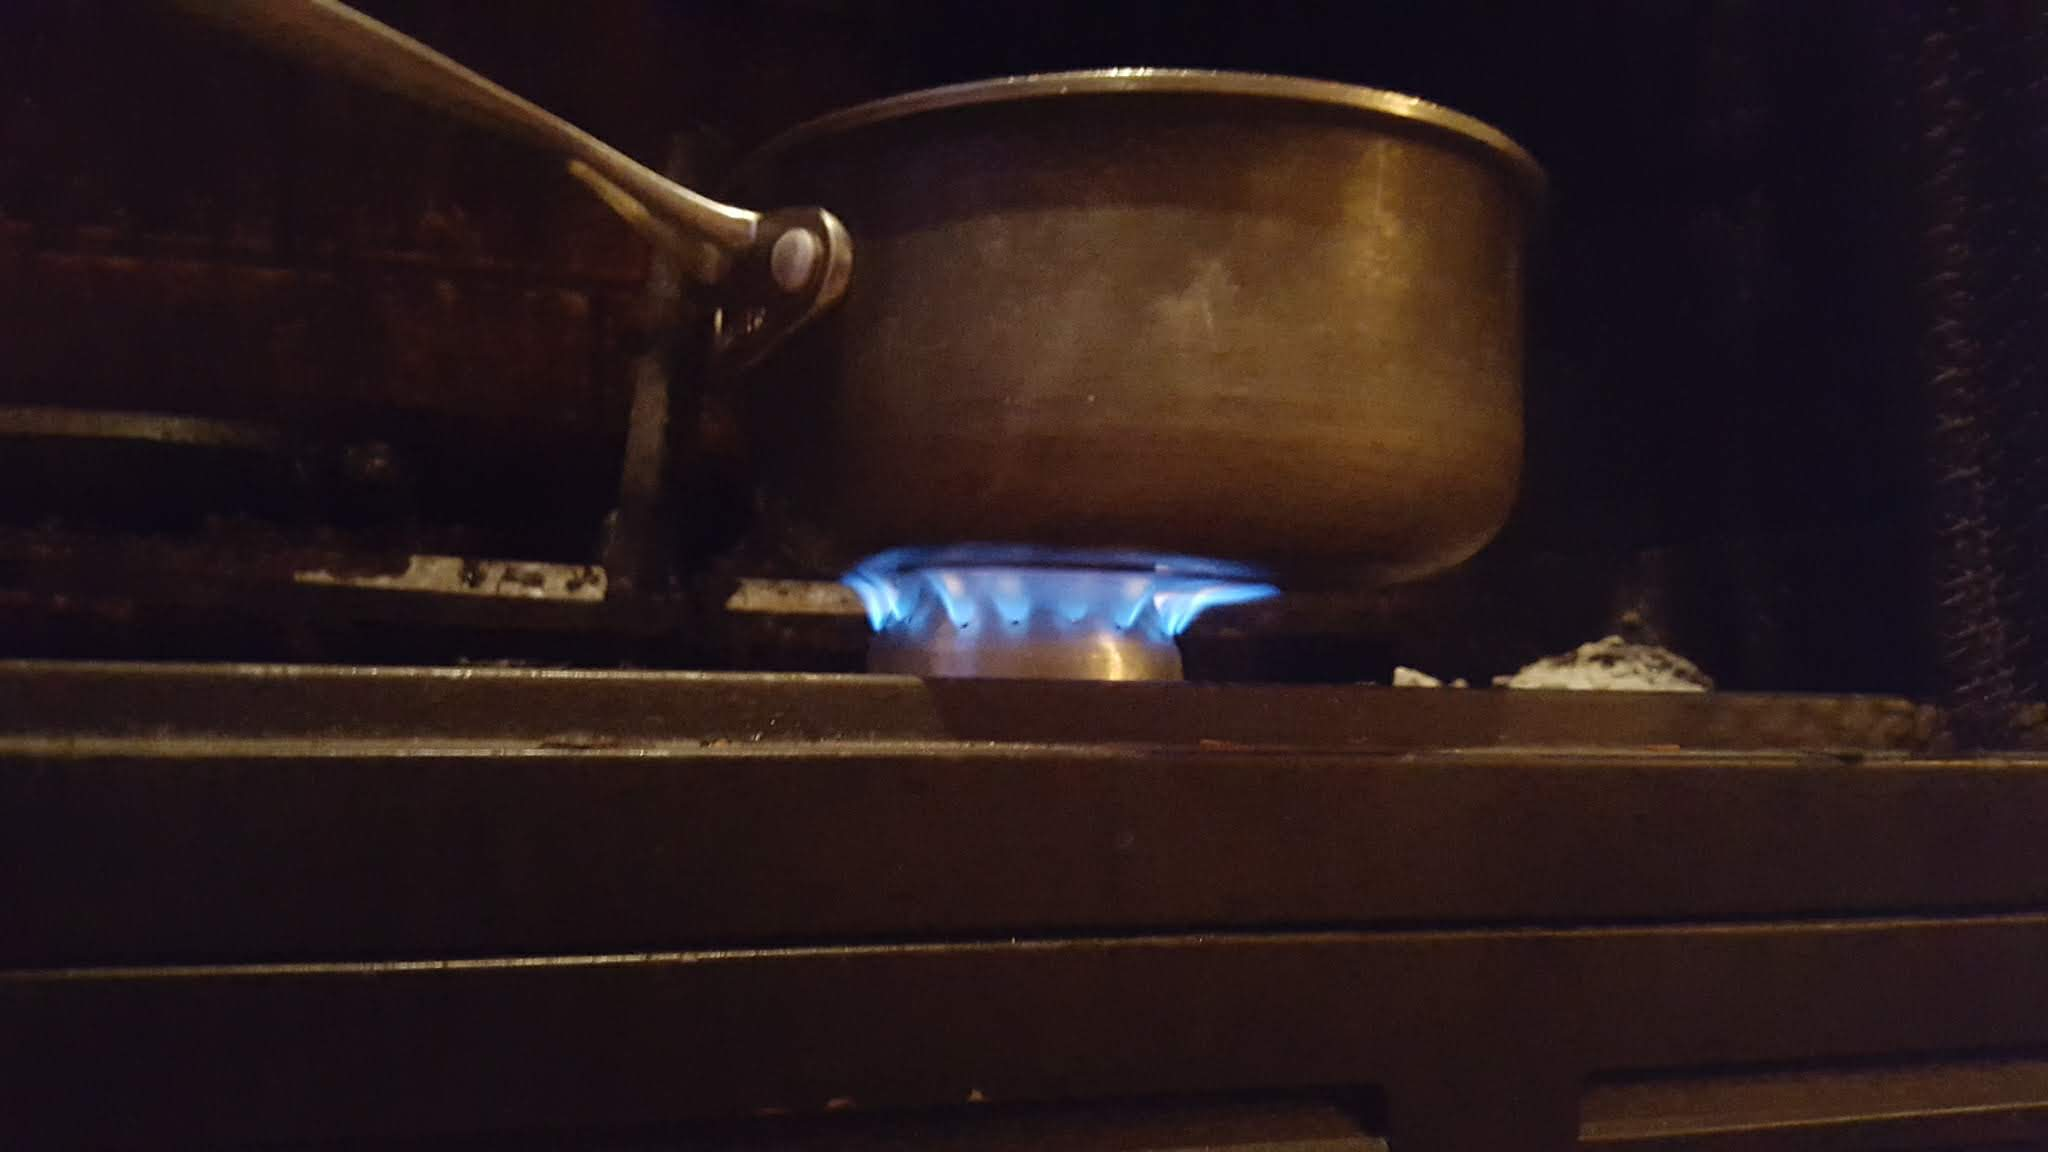 My first pop can stove-20181126_205118.jpg